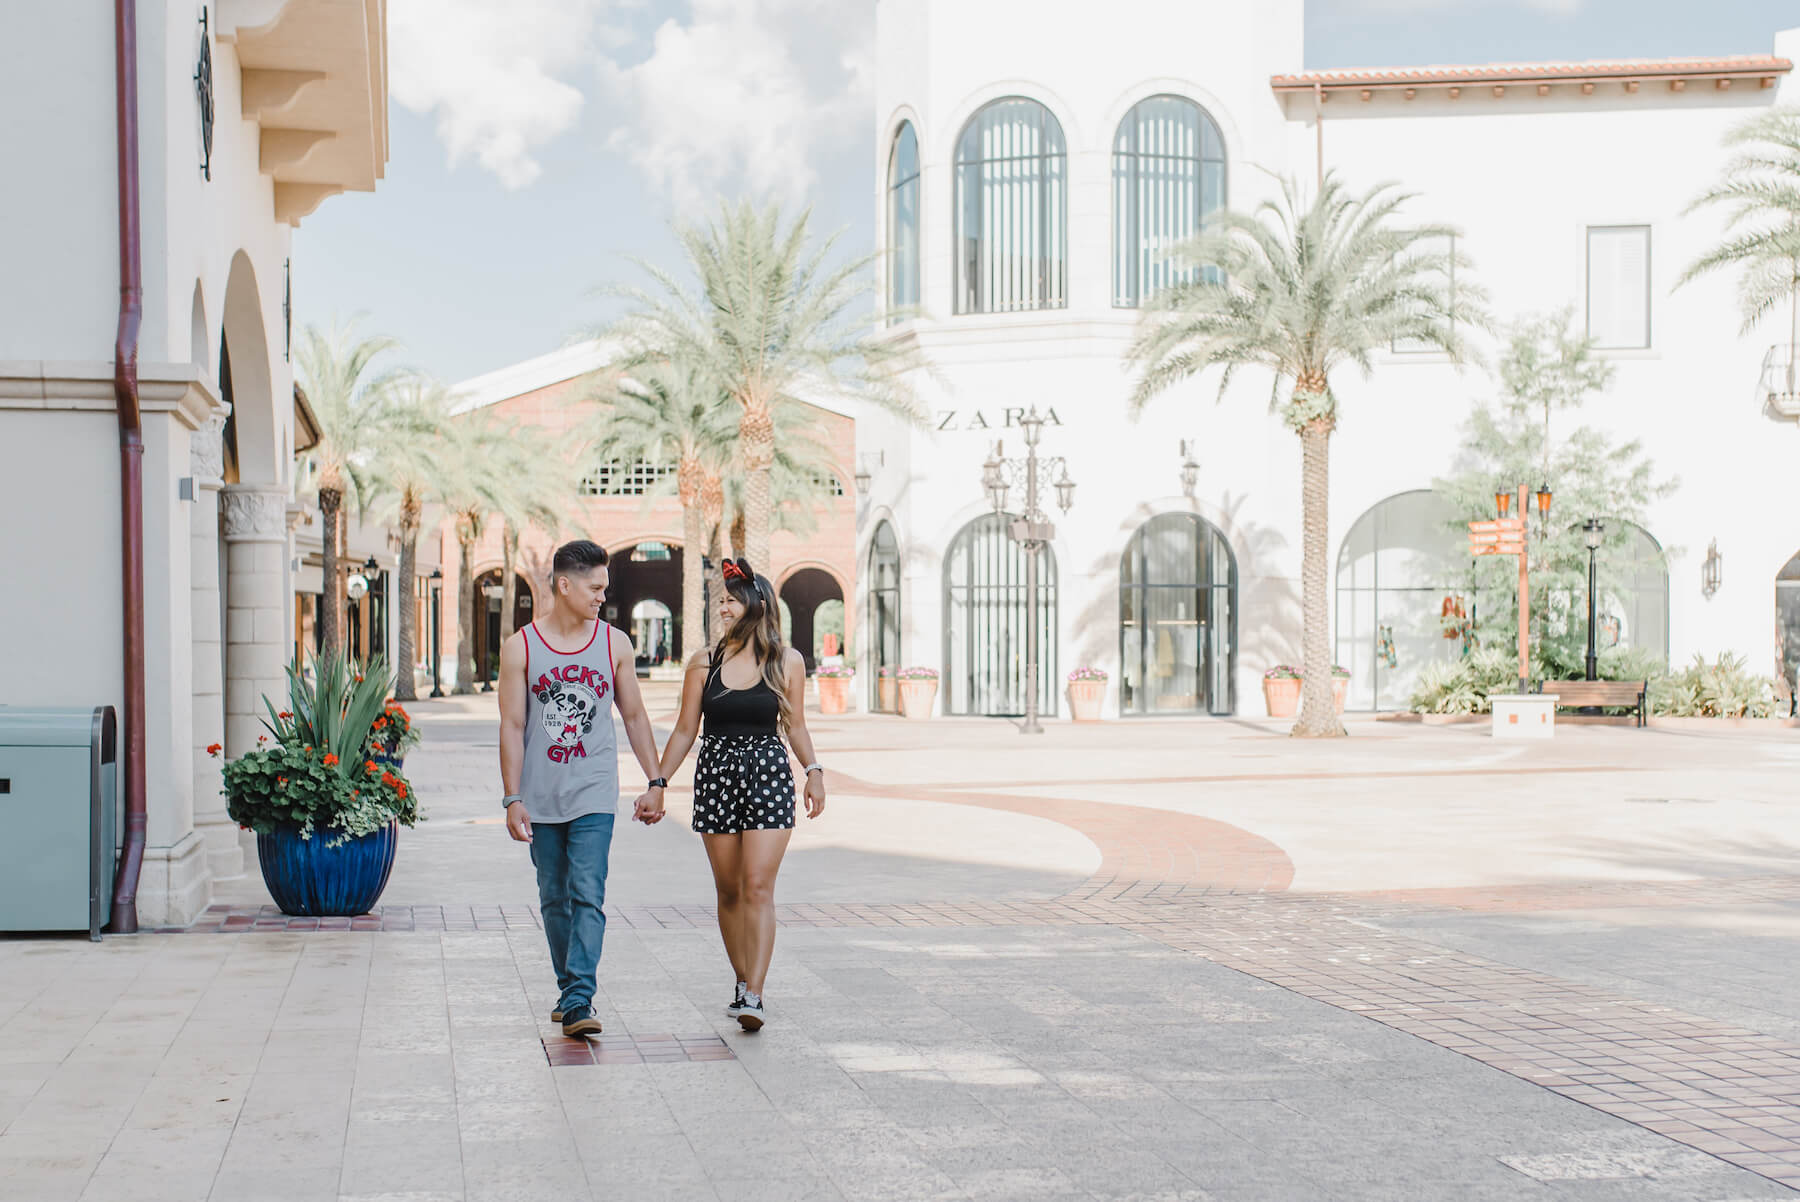 couple walking holding hands in Disney Orlando, Florida